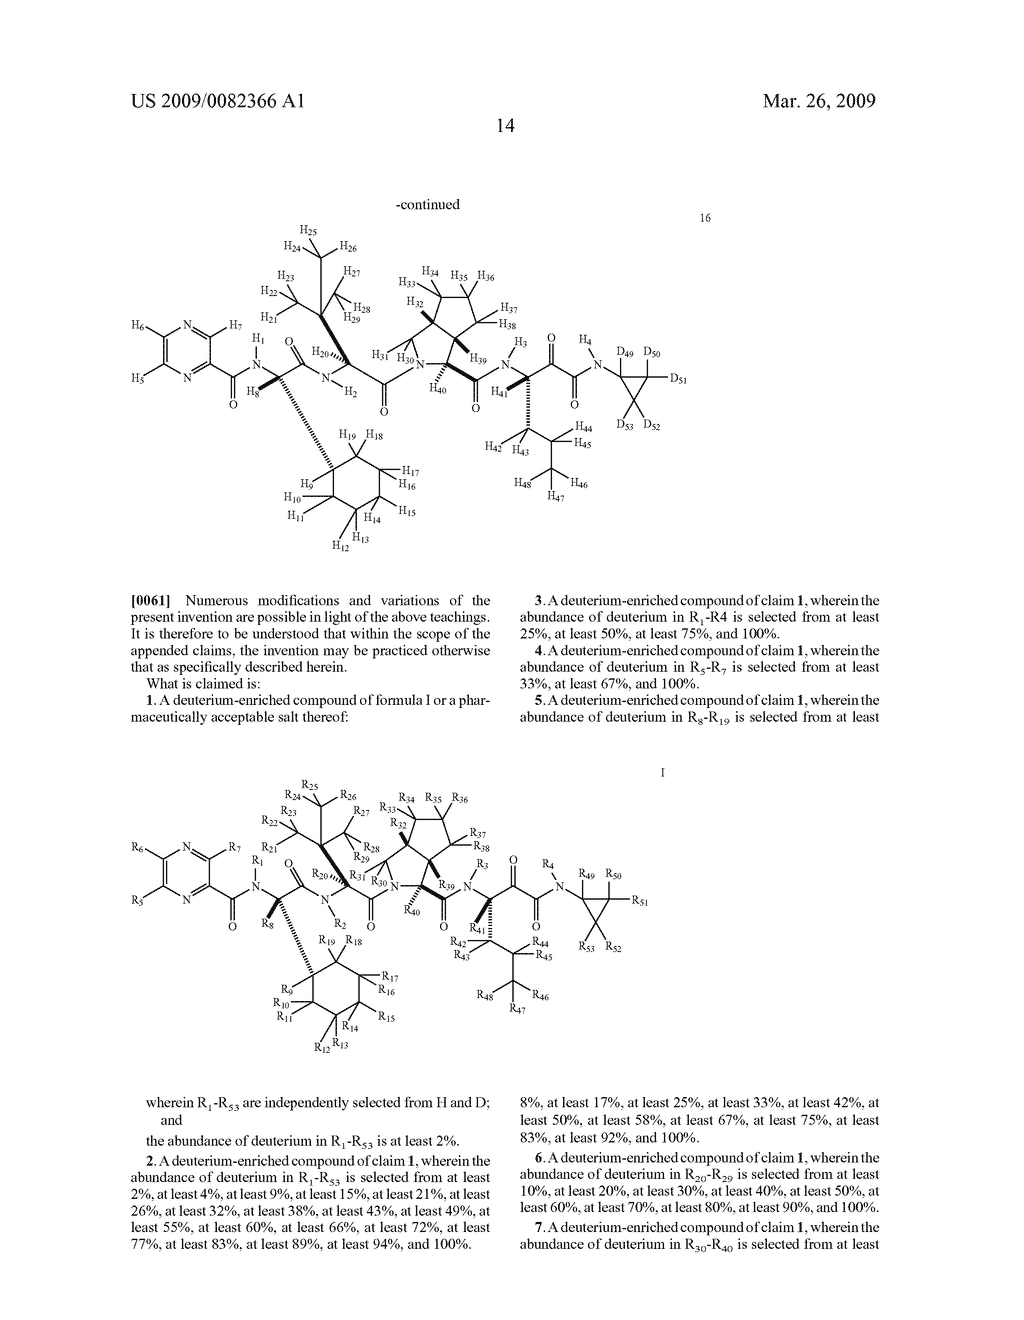 DEUTERIUM-ENRICHED TELAPREVIR - diagram, schematic, and image 15